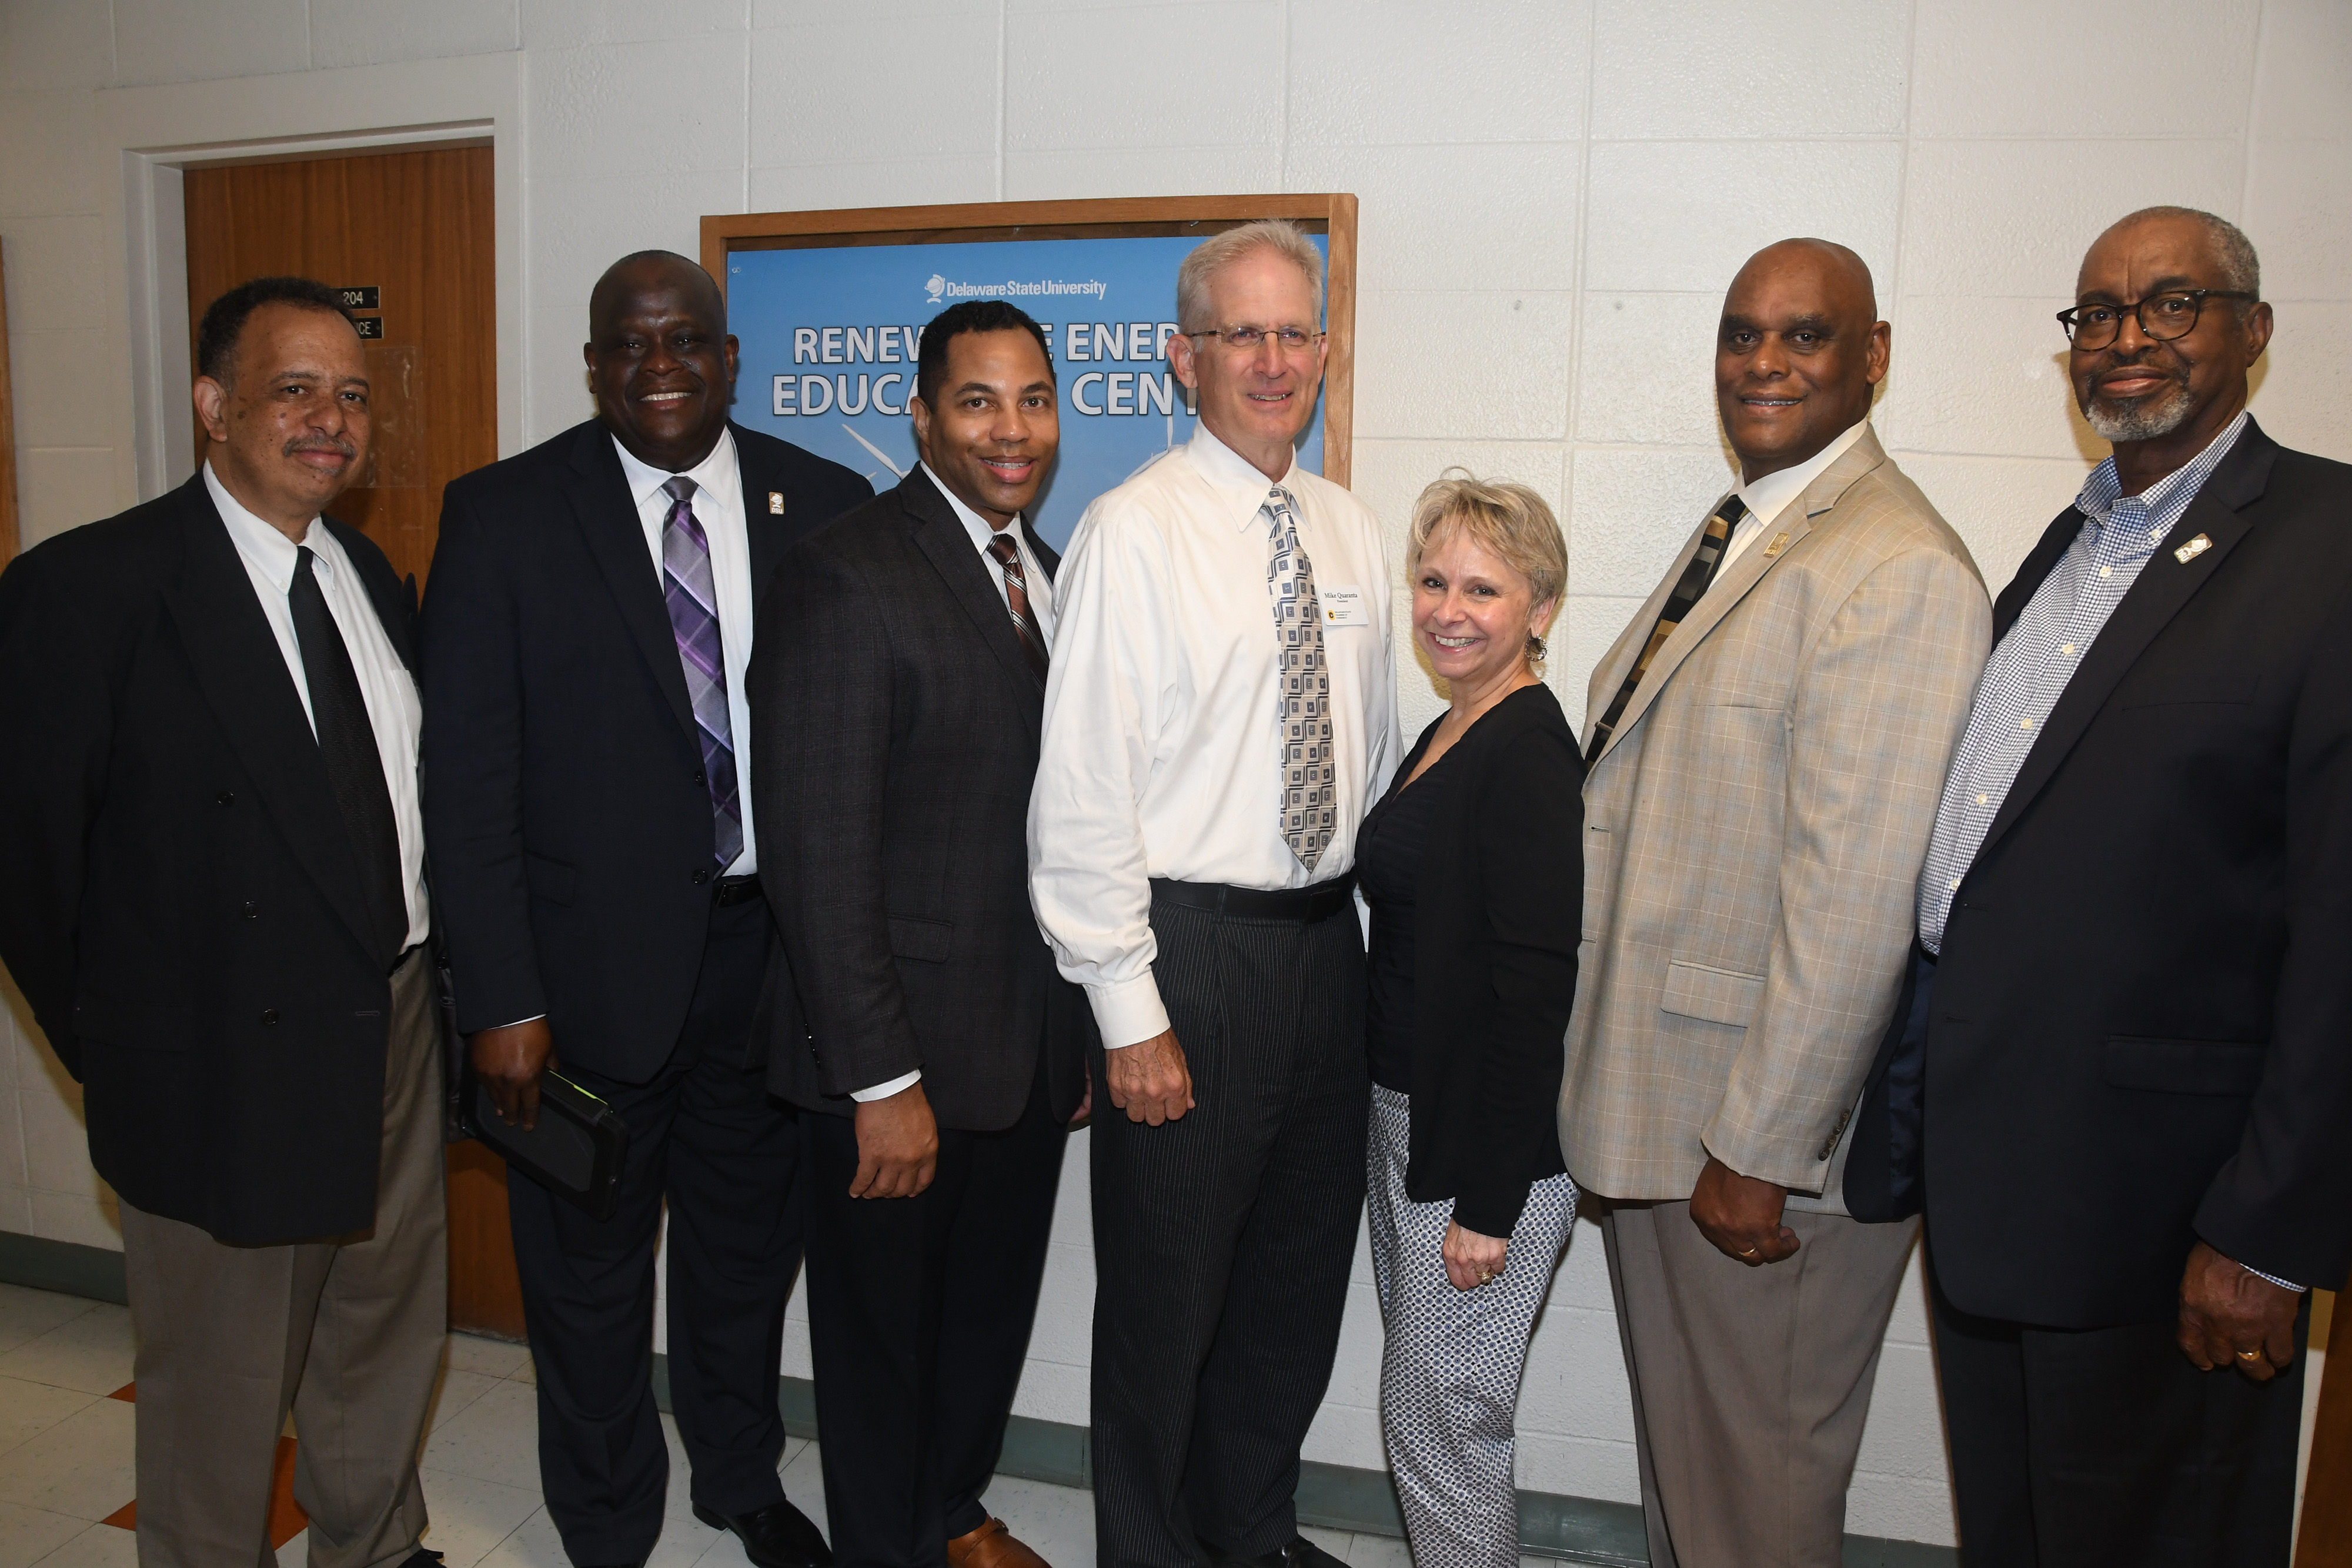 L-r) DSU's Dr. Eric Cheek, assoc. VP of Continuing Ed; Antonio Boyle, VP of Strategic Enrollment; LaShawne Pryor; director of corporations/foundations; Delaware State Chamber of Commerce President Mike Quaranta and Central Delaware Chamber of Commerce President Judy Diogo; along with DSU's William Pickrum, REEC project management; and Dr. Dyremple Marsh, dean of the College of Agriculture, Science and Technology.